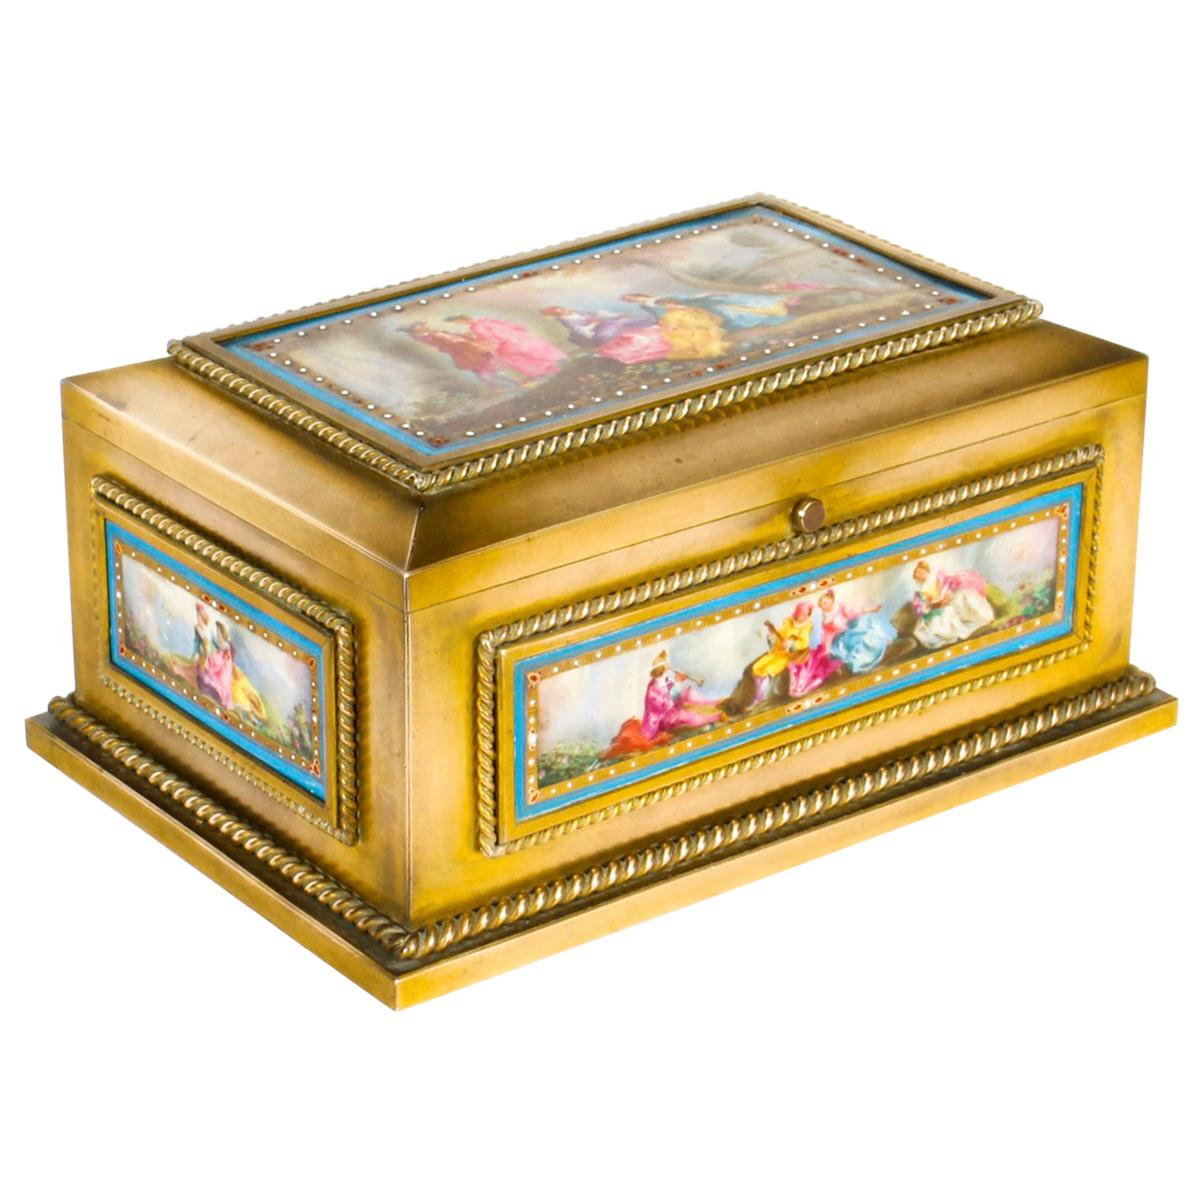 Antique French Ormolu and Sèvres Porcelain Jewelry Casket, 19th Century